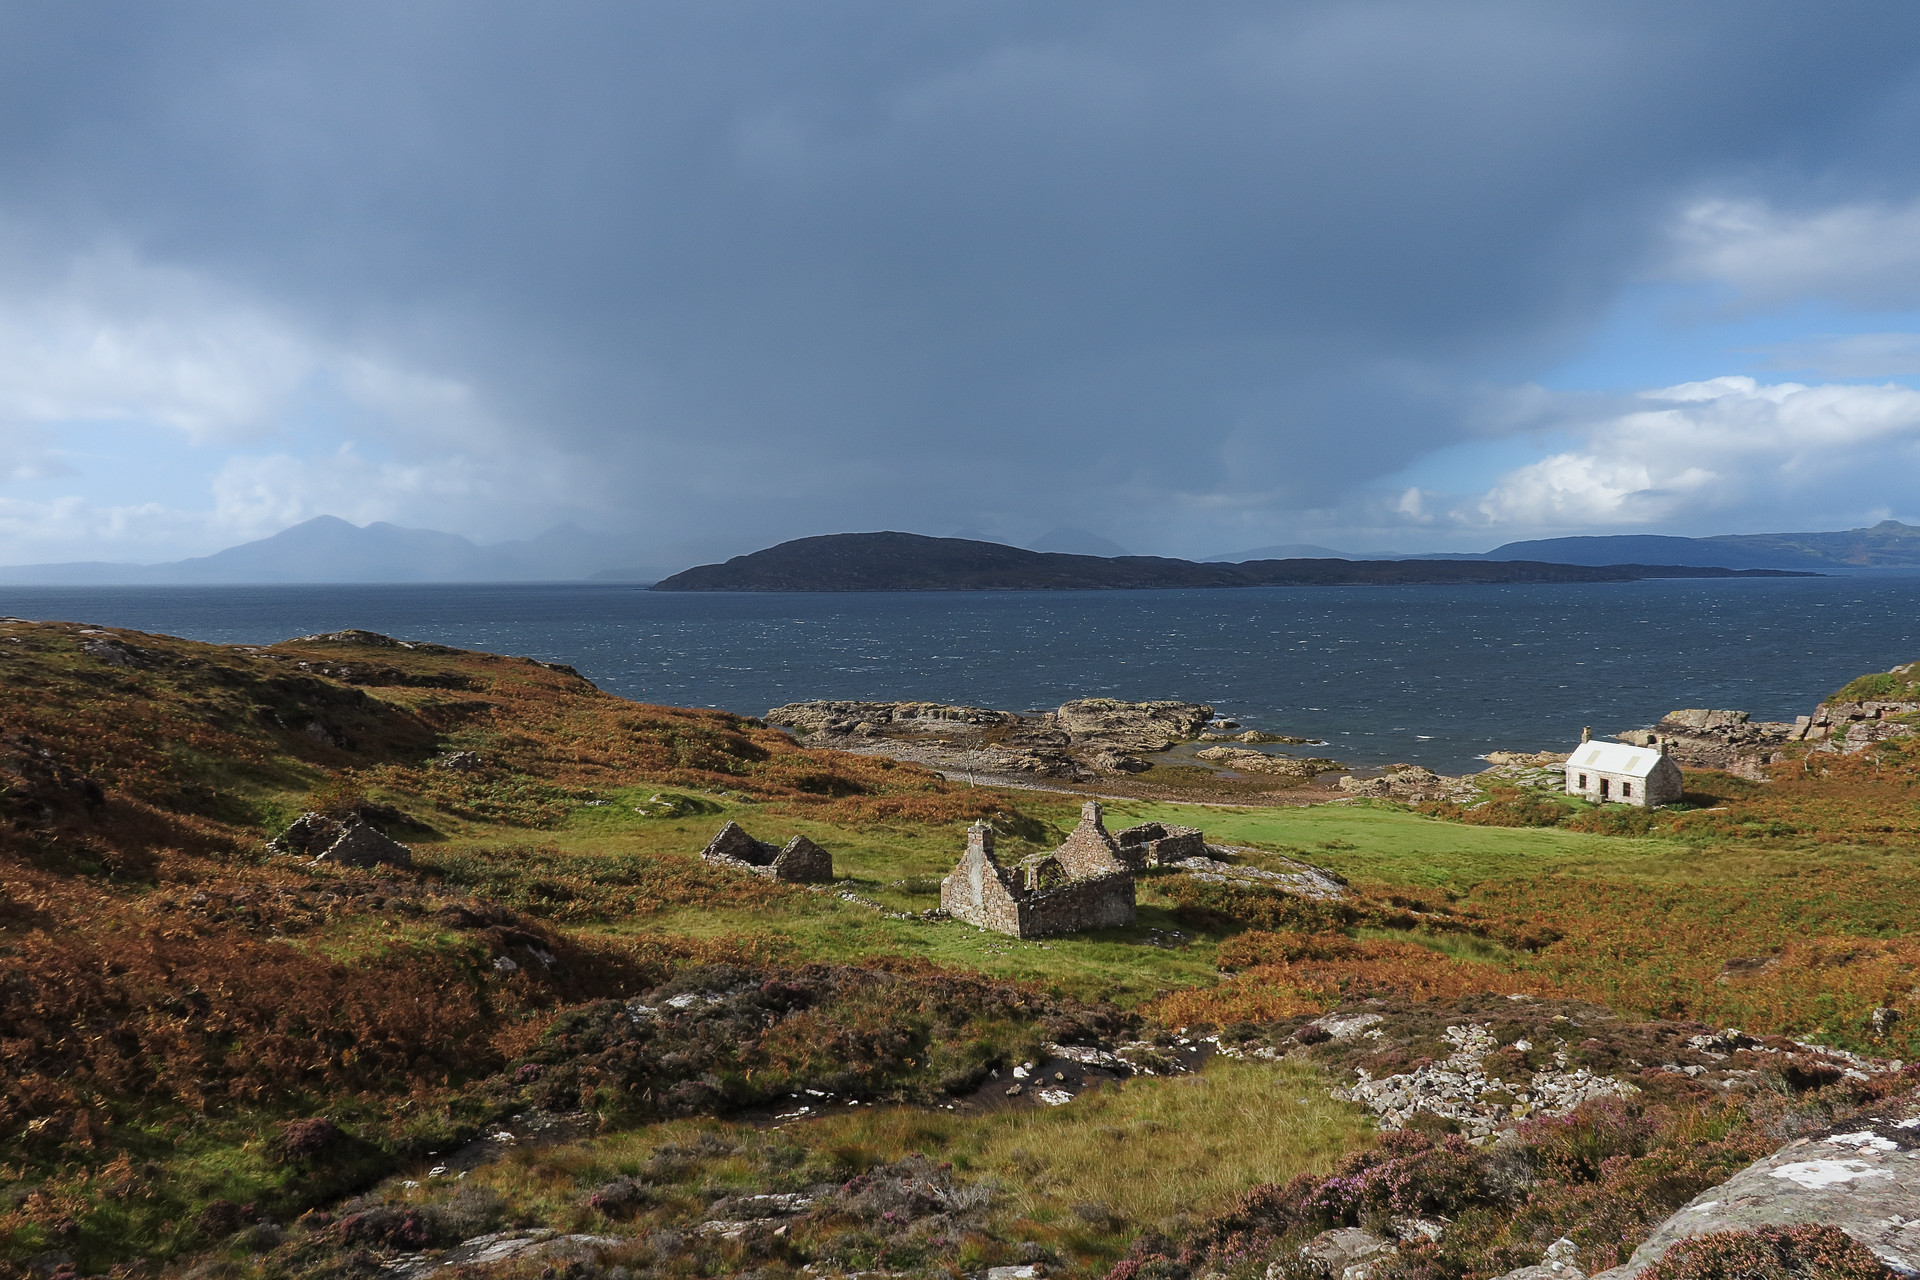 Uags Bothy, Applecross, North West Highlands